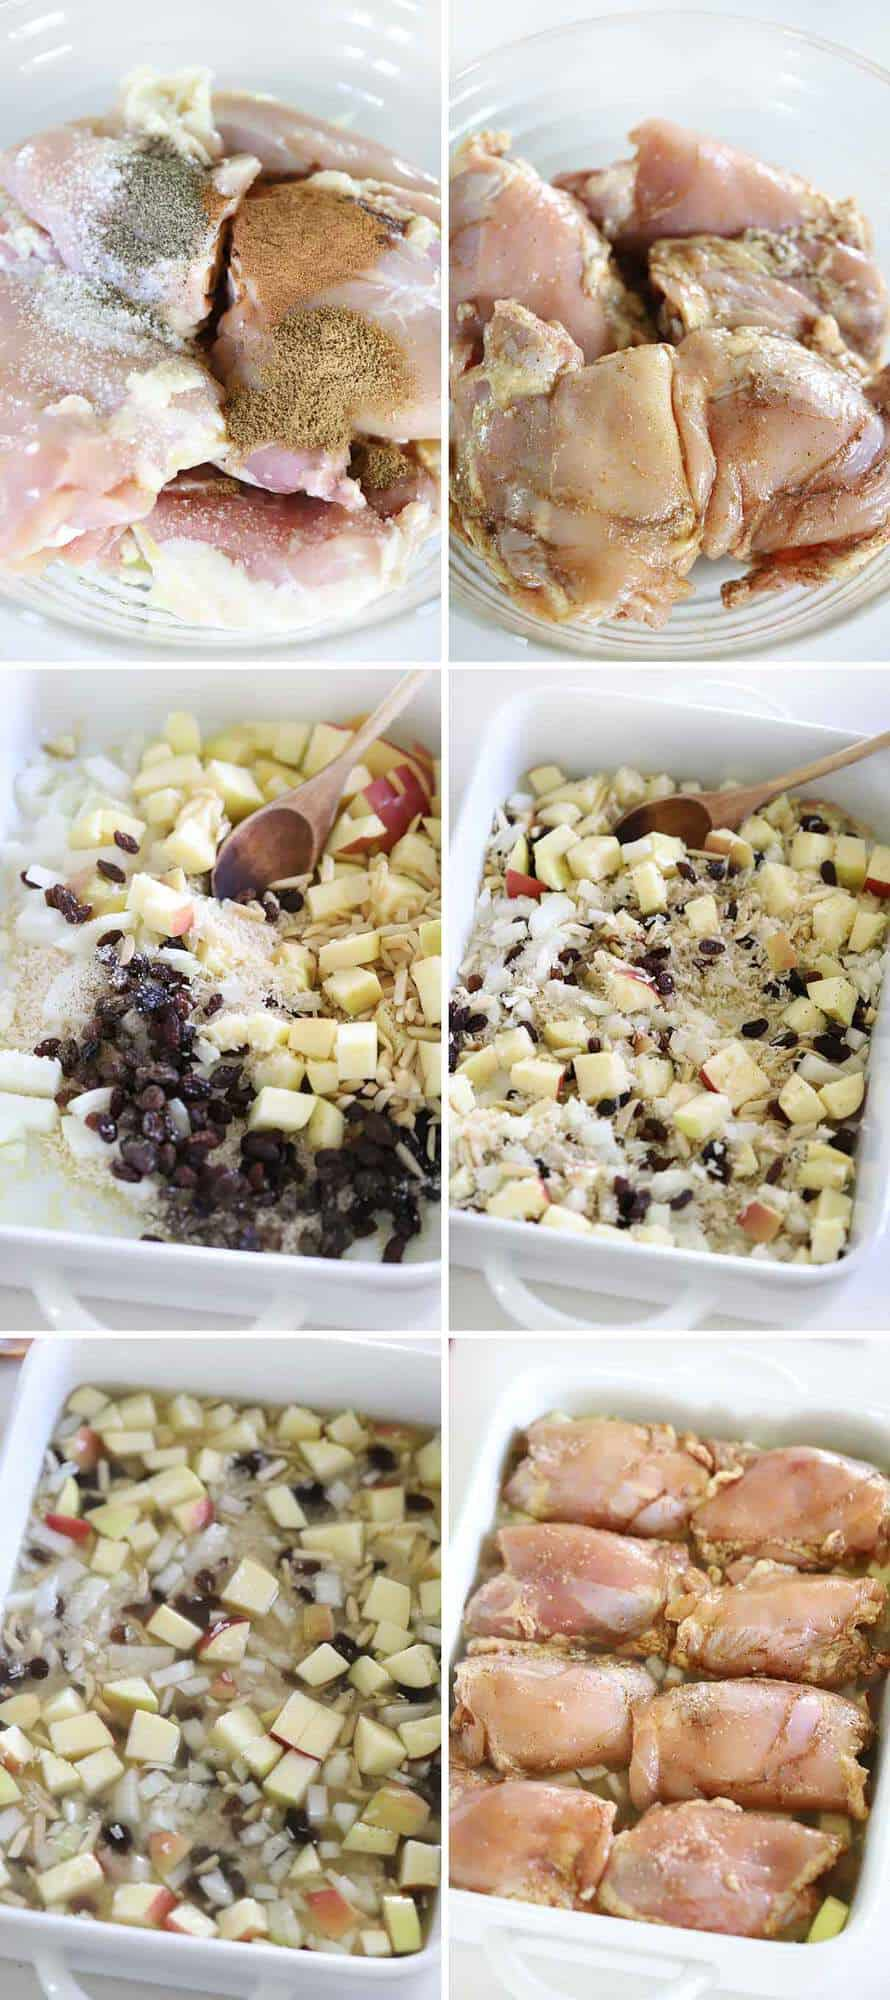 A photo collage showing the process of making spiced chicken and rice in a baking dish.